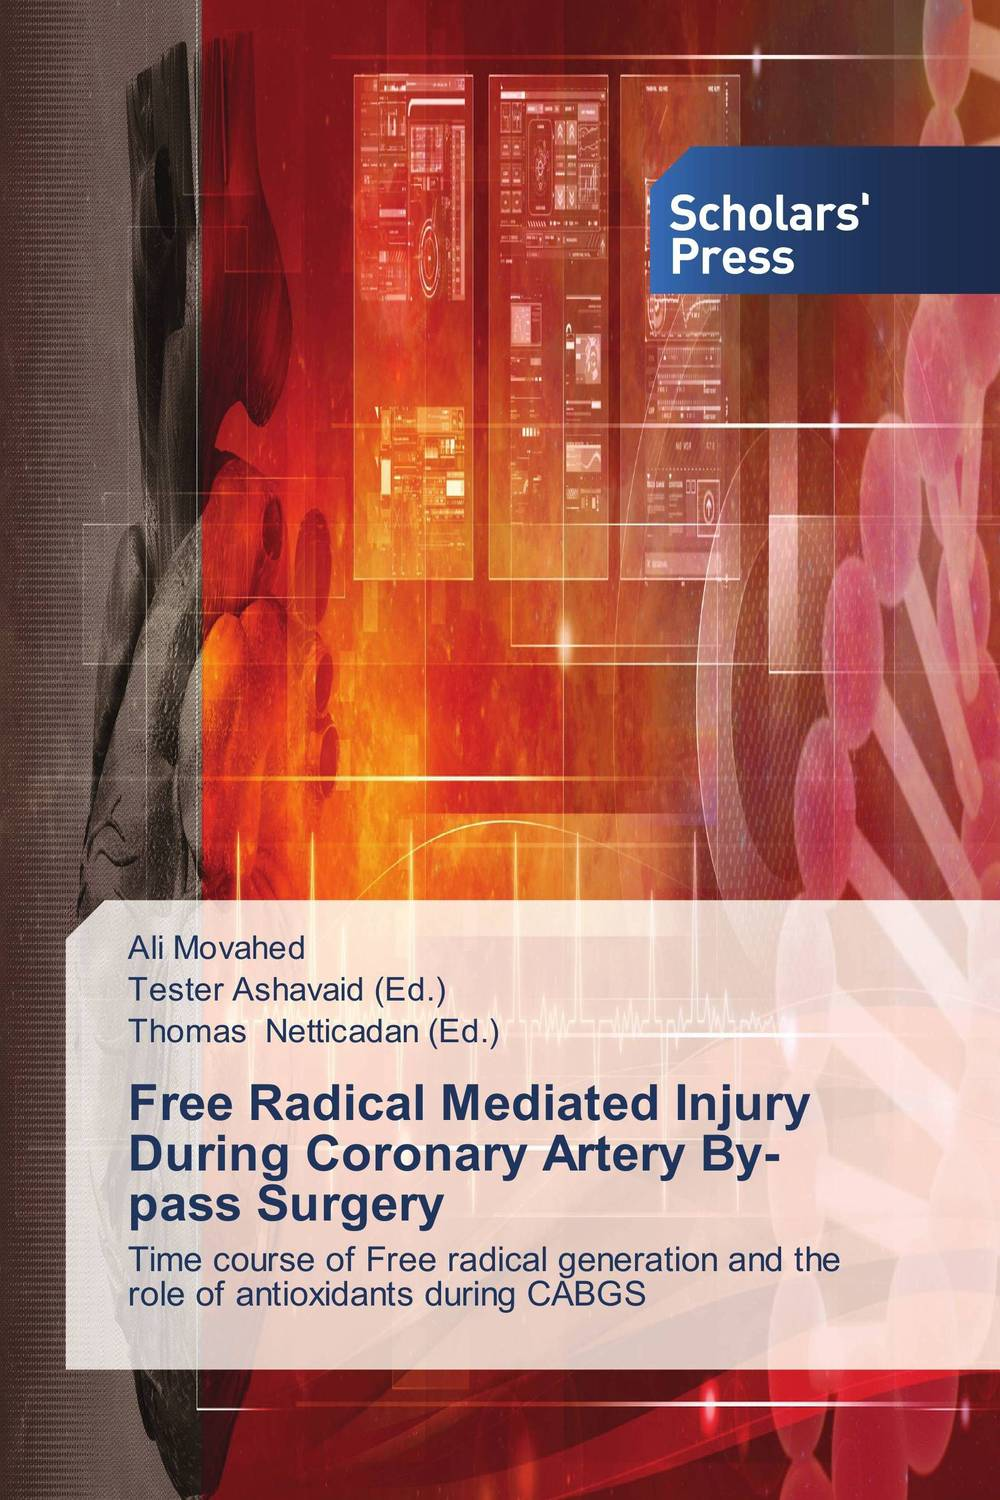 Free Radical Mediated Injury During Coronary Artery By-pass Surgery